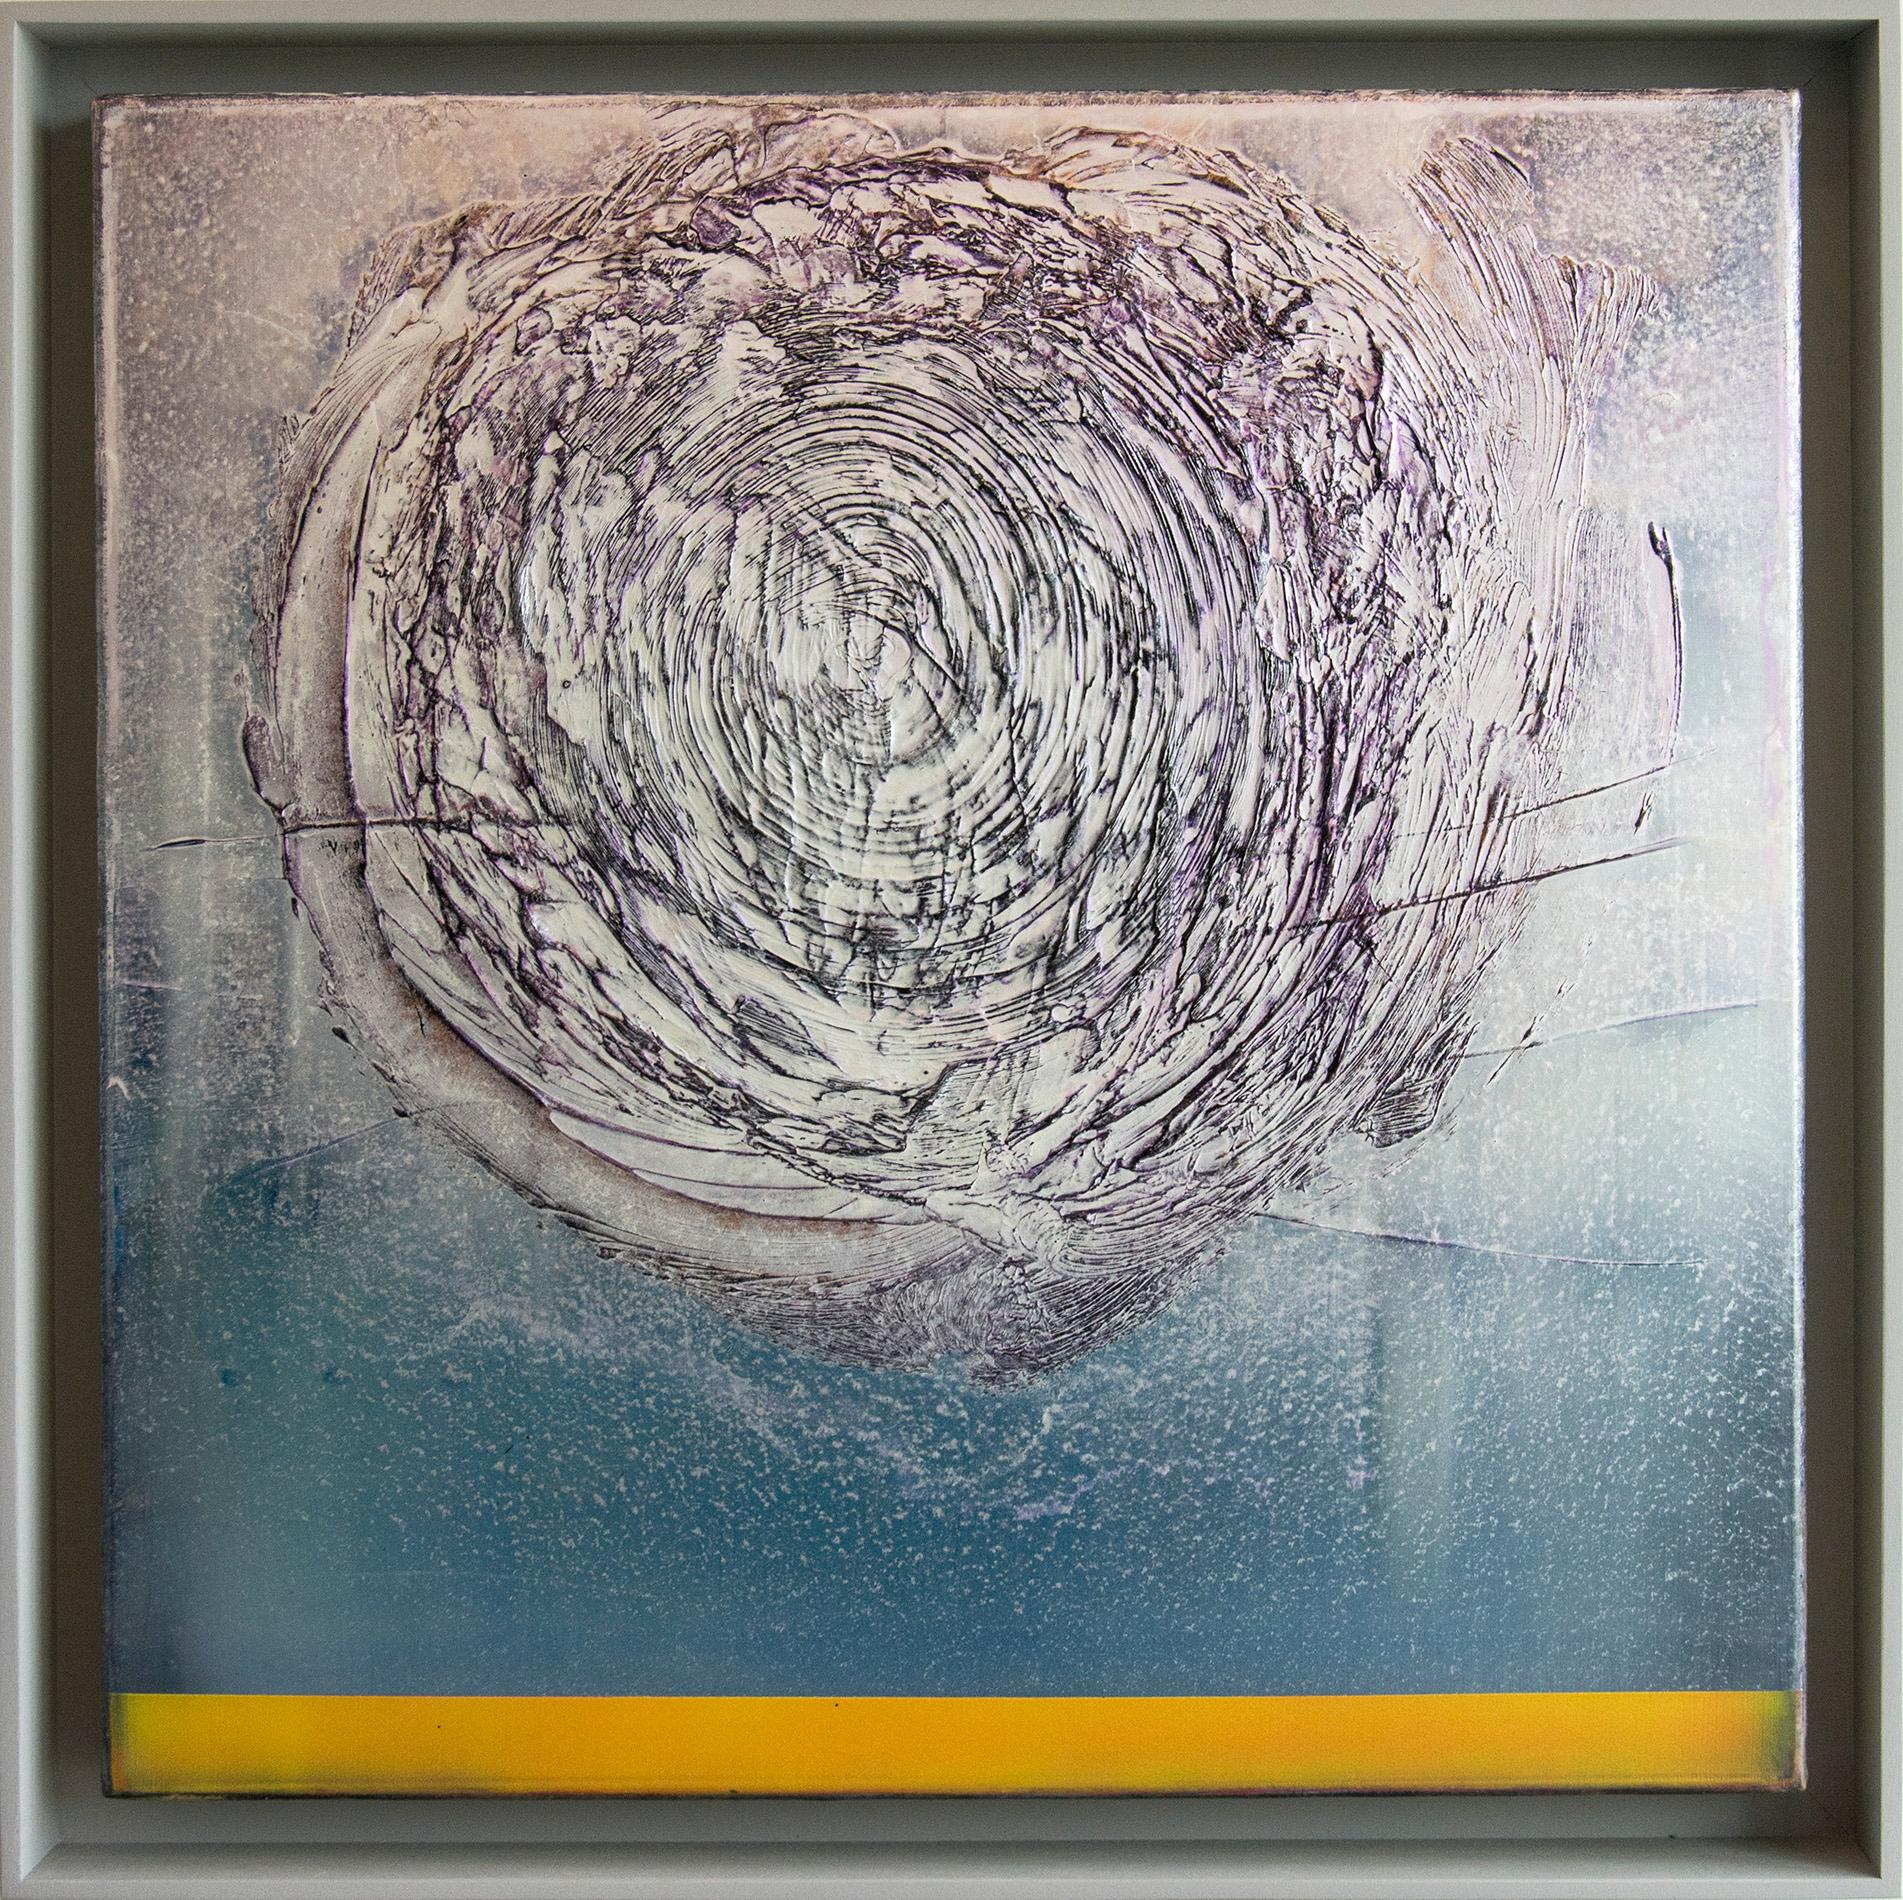 Helio - Blue, Silver, Violet and Yellow abstraction